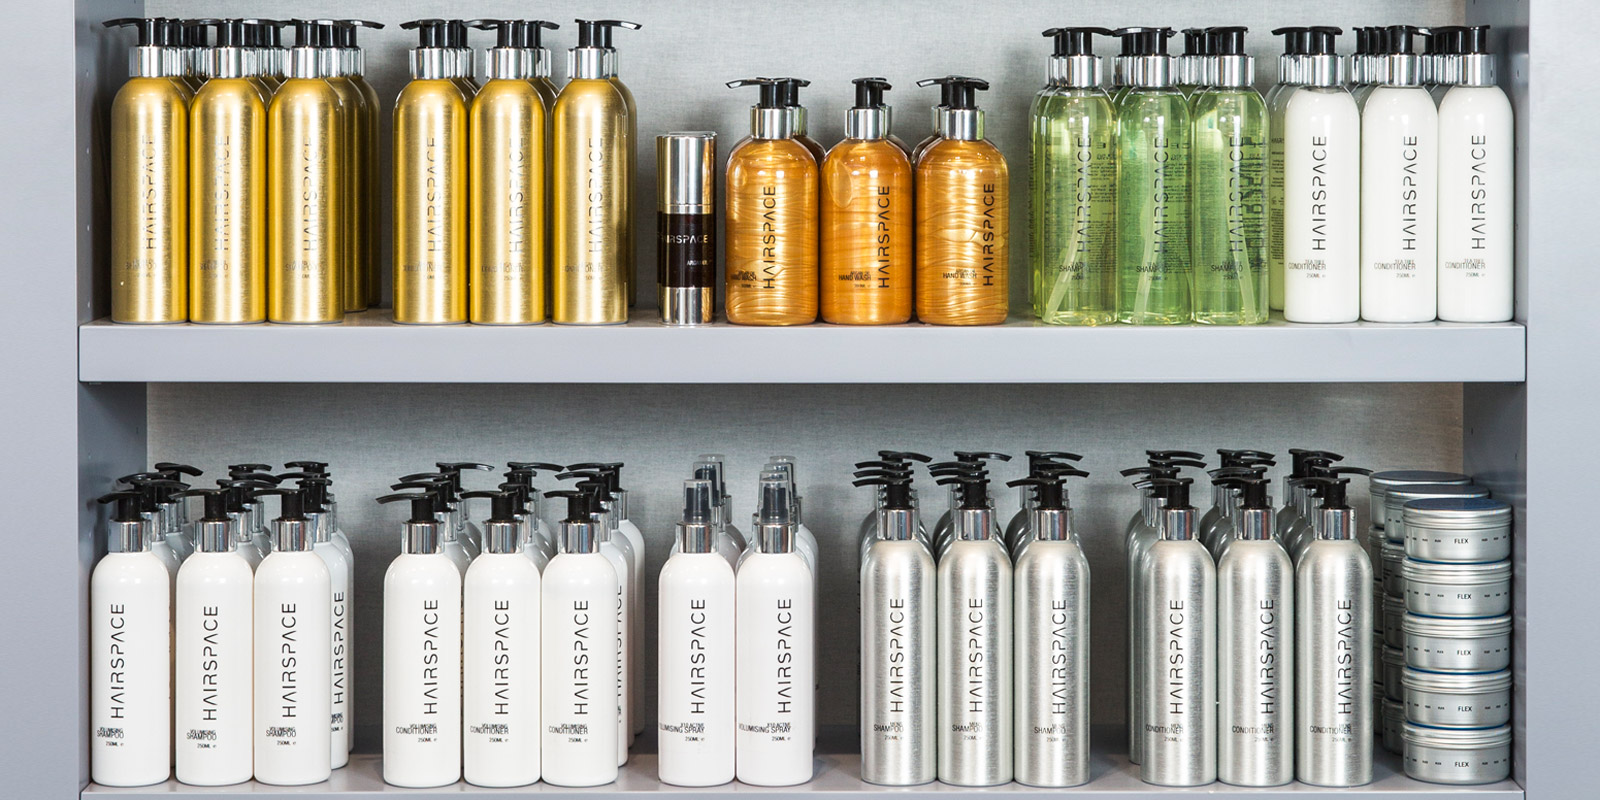 hairspace-hair-products-1600×800